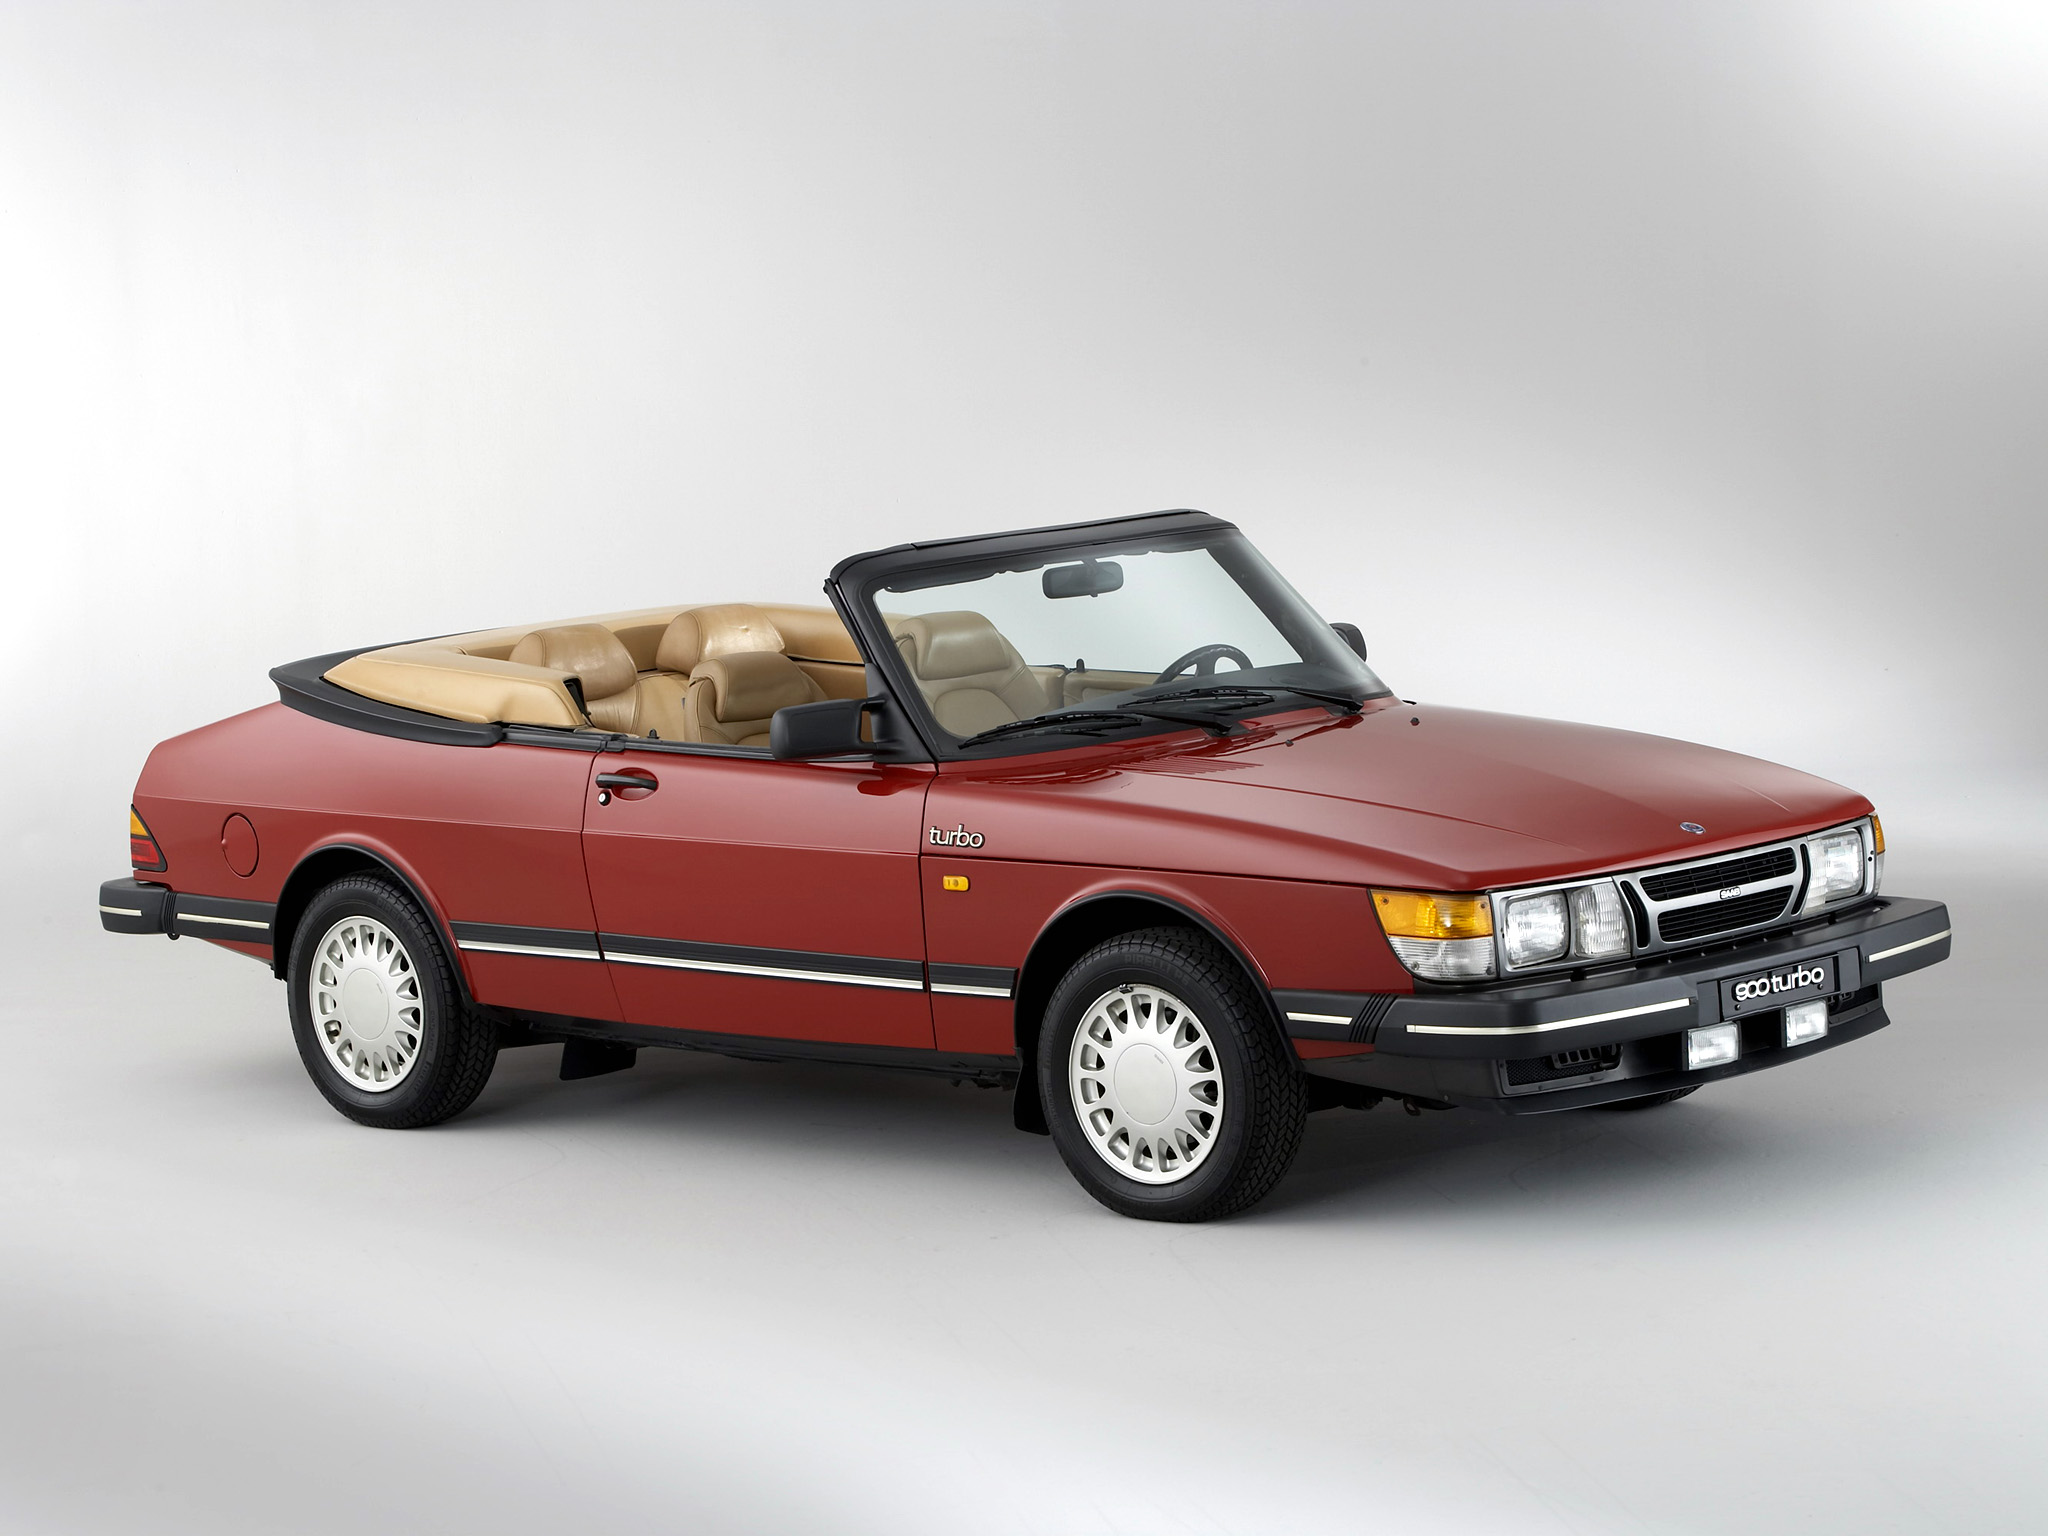 Saab 900 Picture 84037 Saab Photo Gallery Carsbase Com